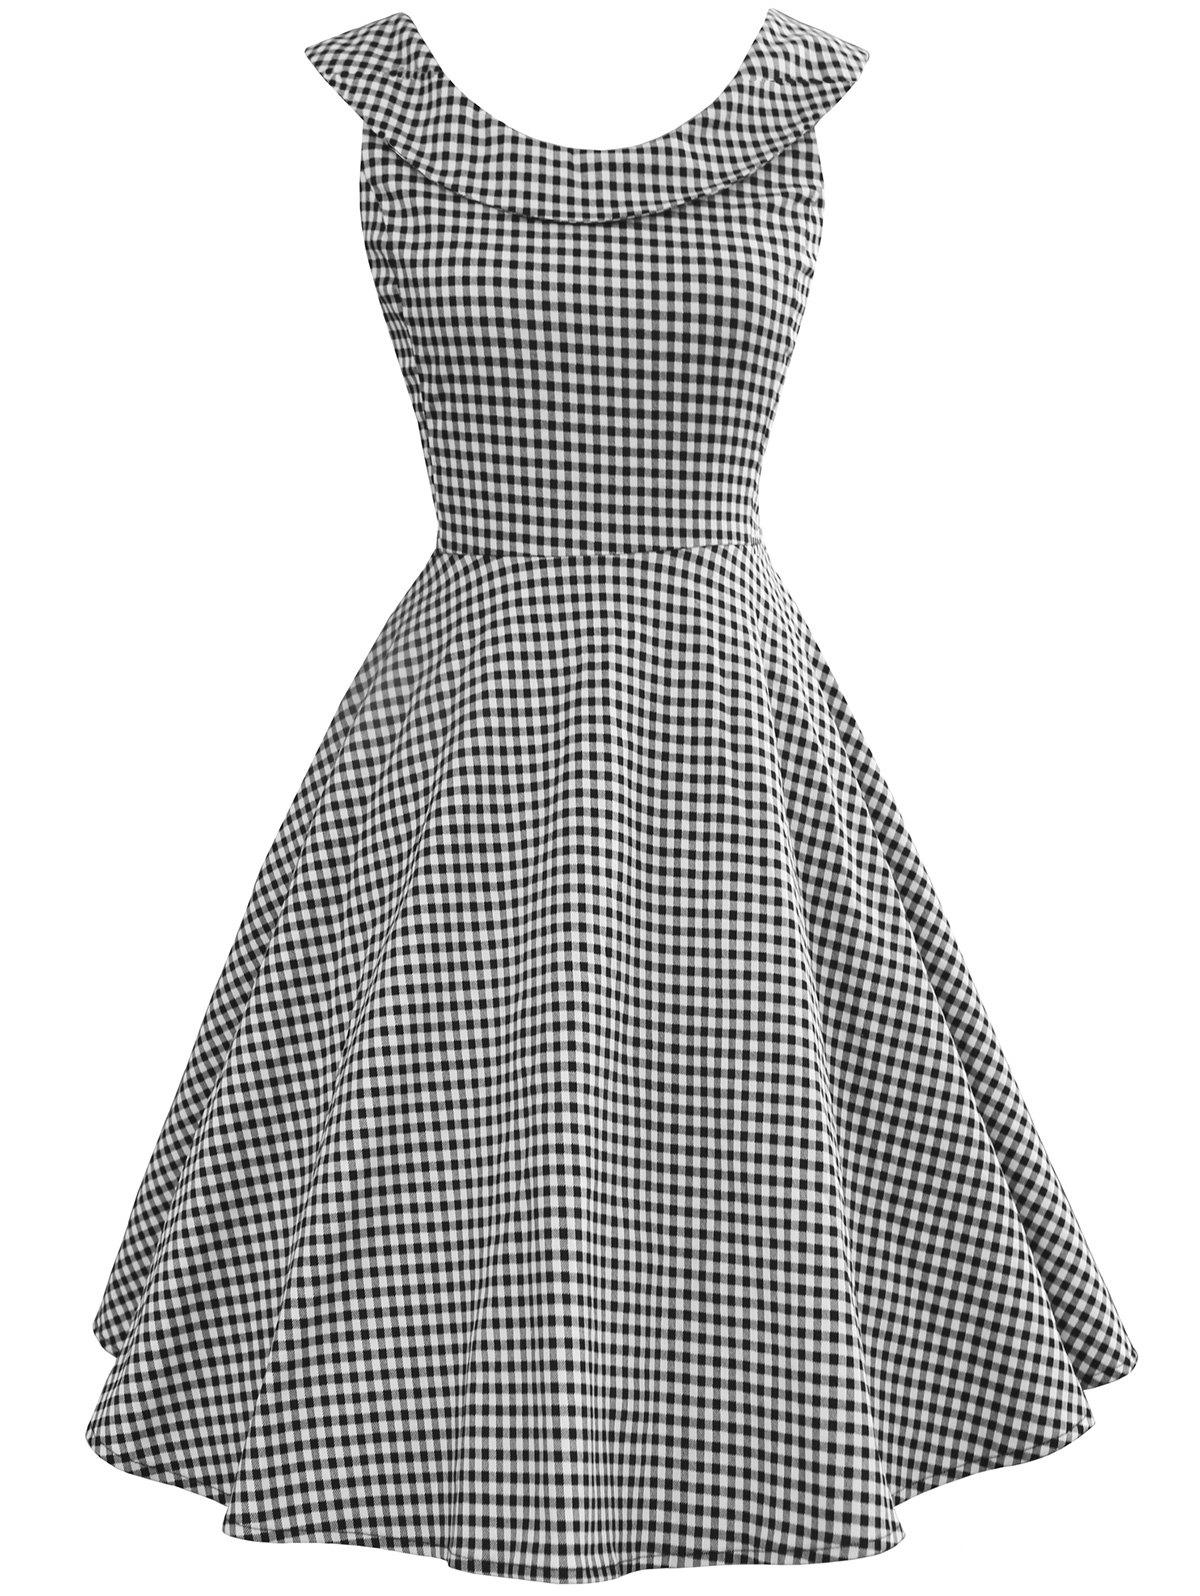 633fa6b7ea02 41% OFF] Vintage Gingham High Waist Swing Dress | Rosegal